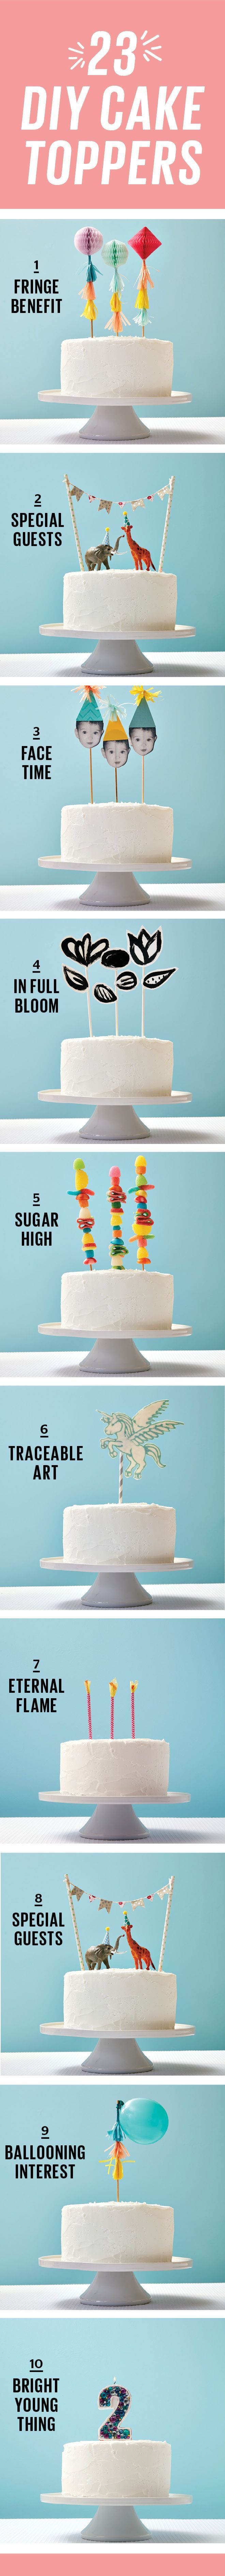 Not crafty? No problem! These DIY cake toppers are simple to make, but will really wow your guests.